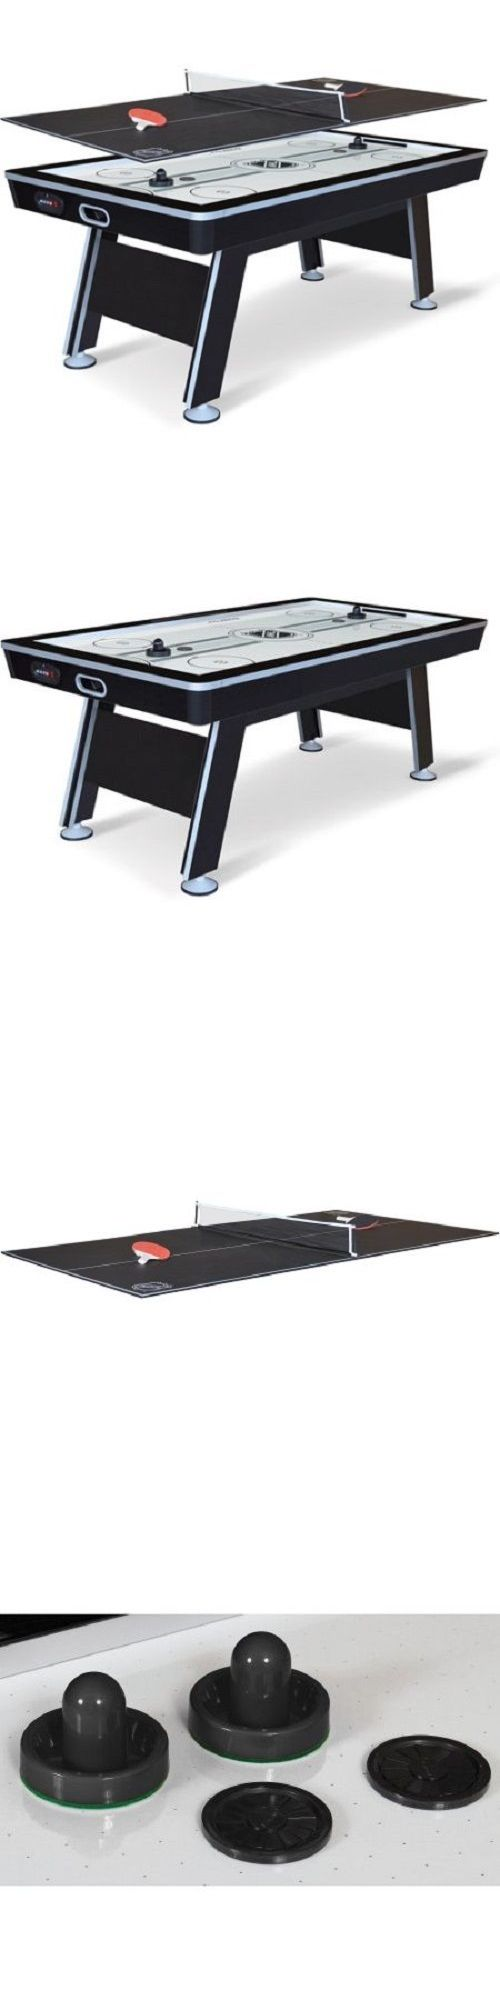 Air Hockey 36275: 80 Air Powered Hockey Nhl Game Sports Indoor Game Room W Table Tennis Top New -> BUY IT NOW ONLY: $332 on eBay!